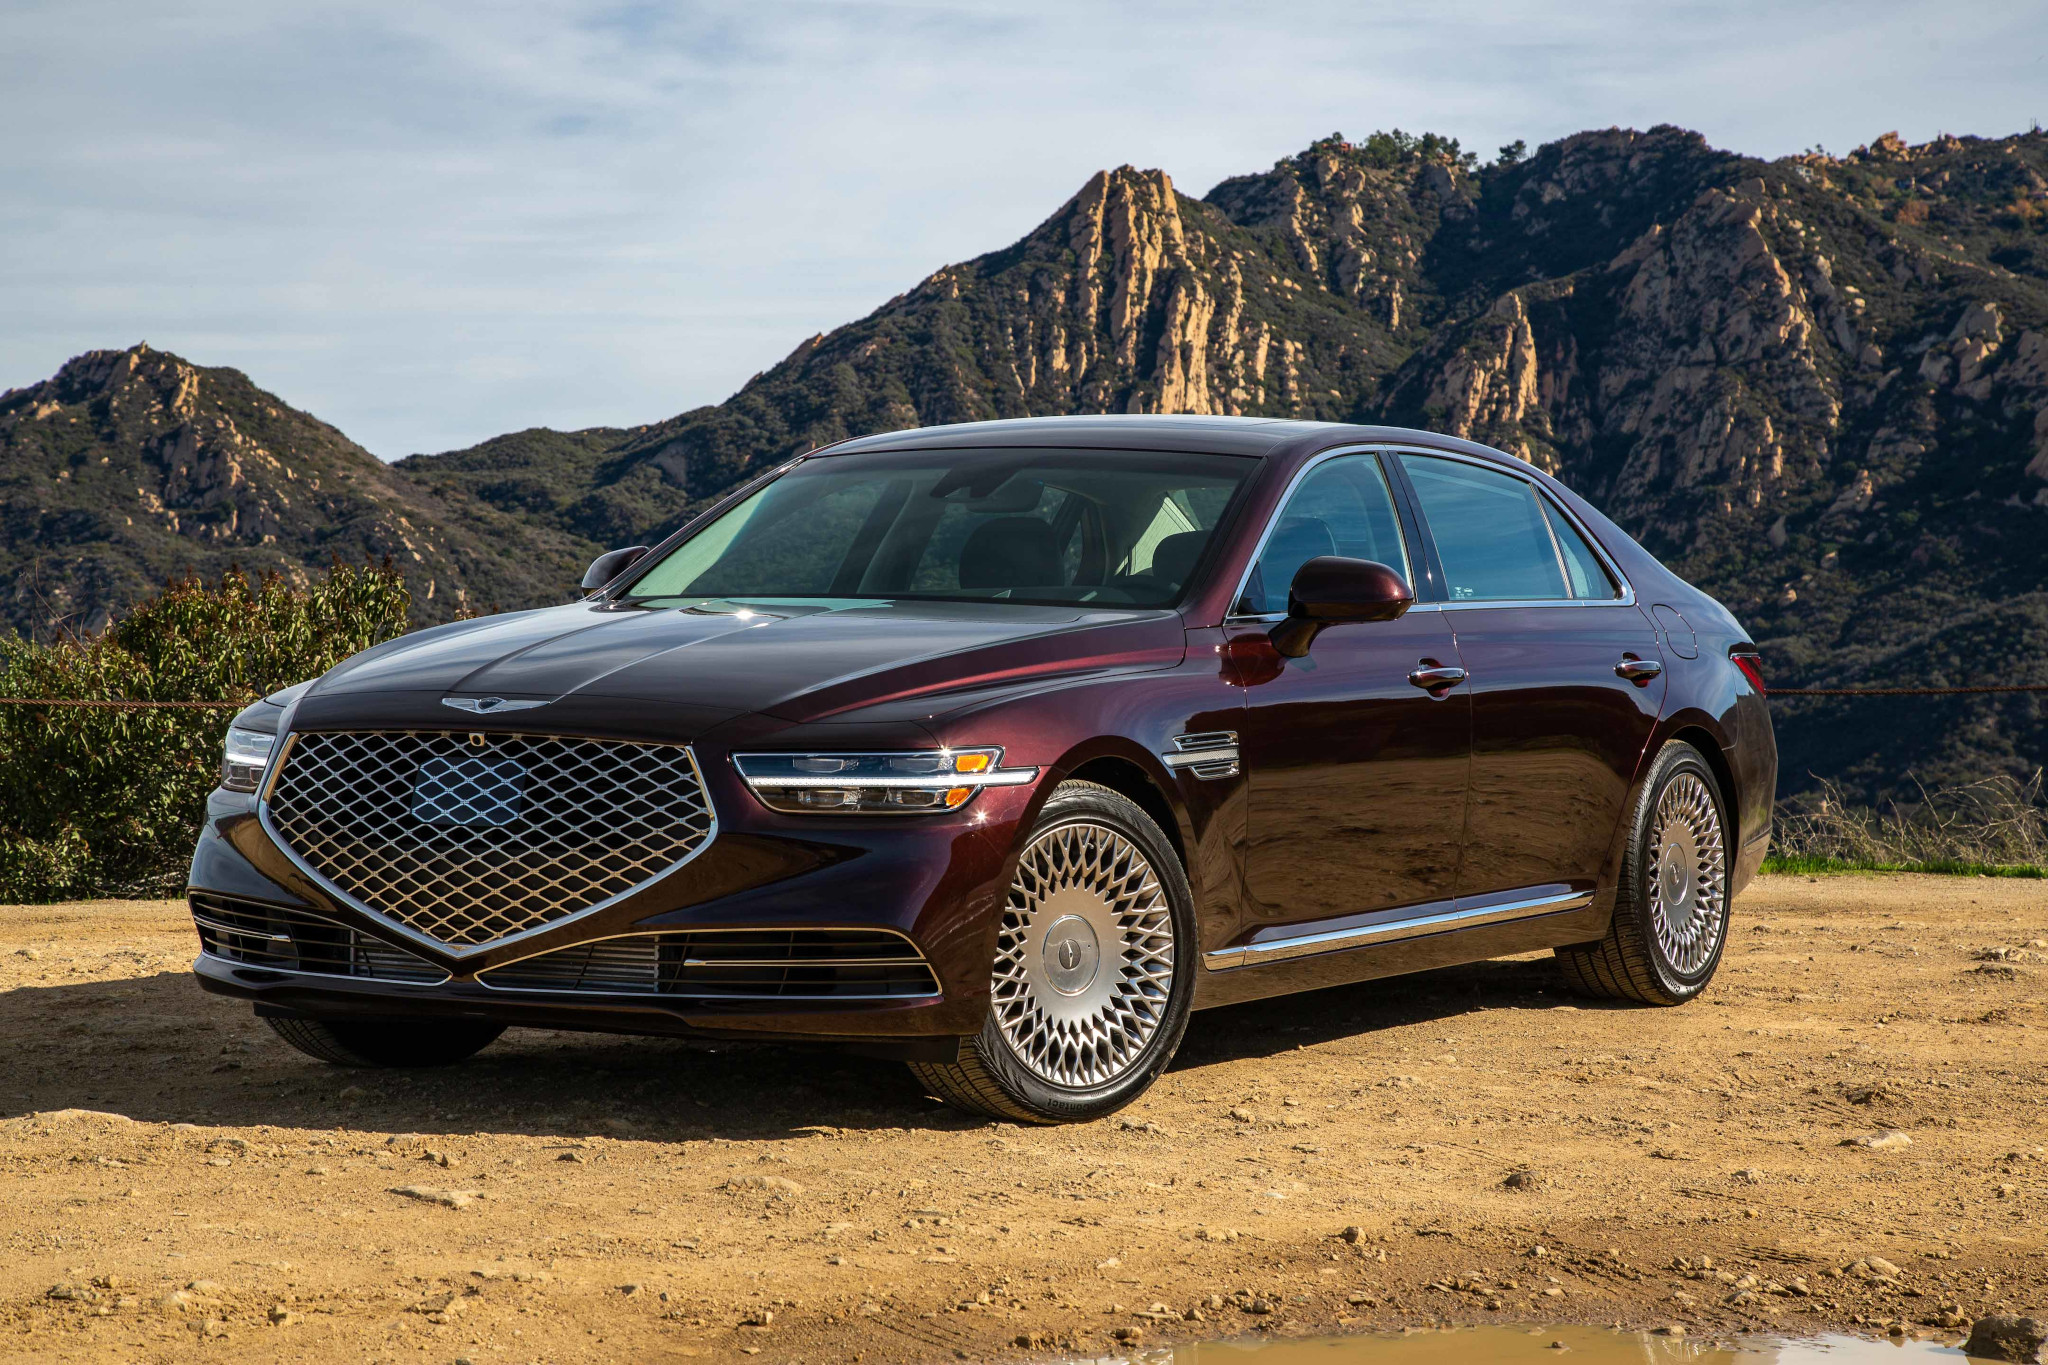 2020 Genesis G90 Review: New Face, Same Space